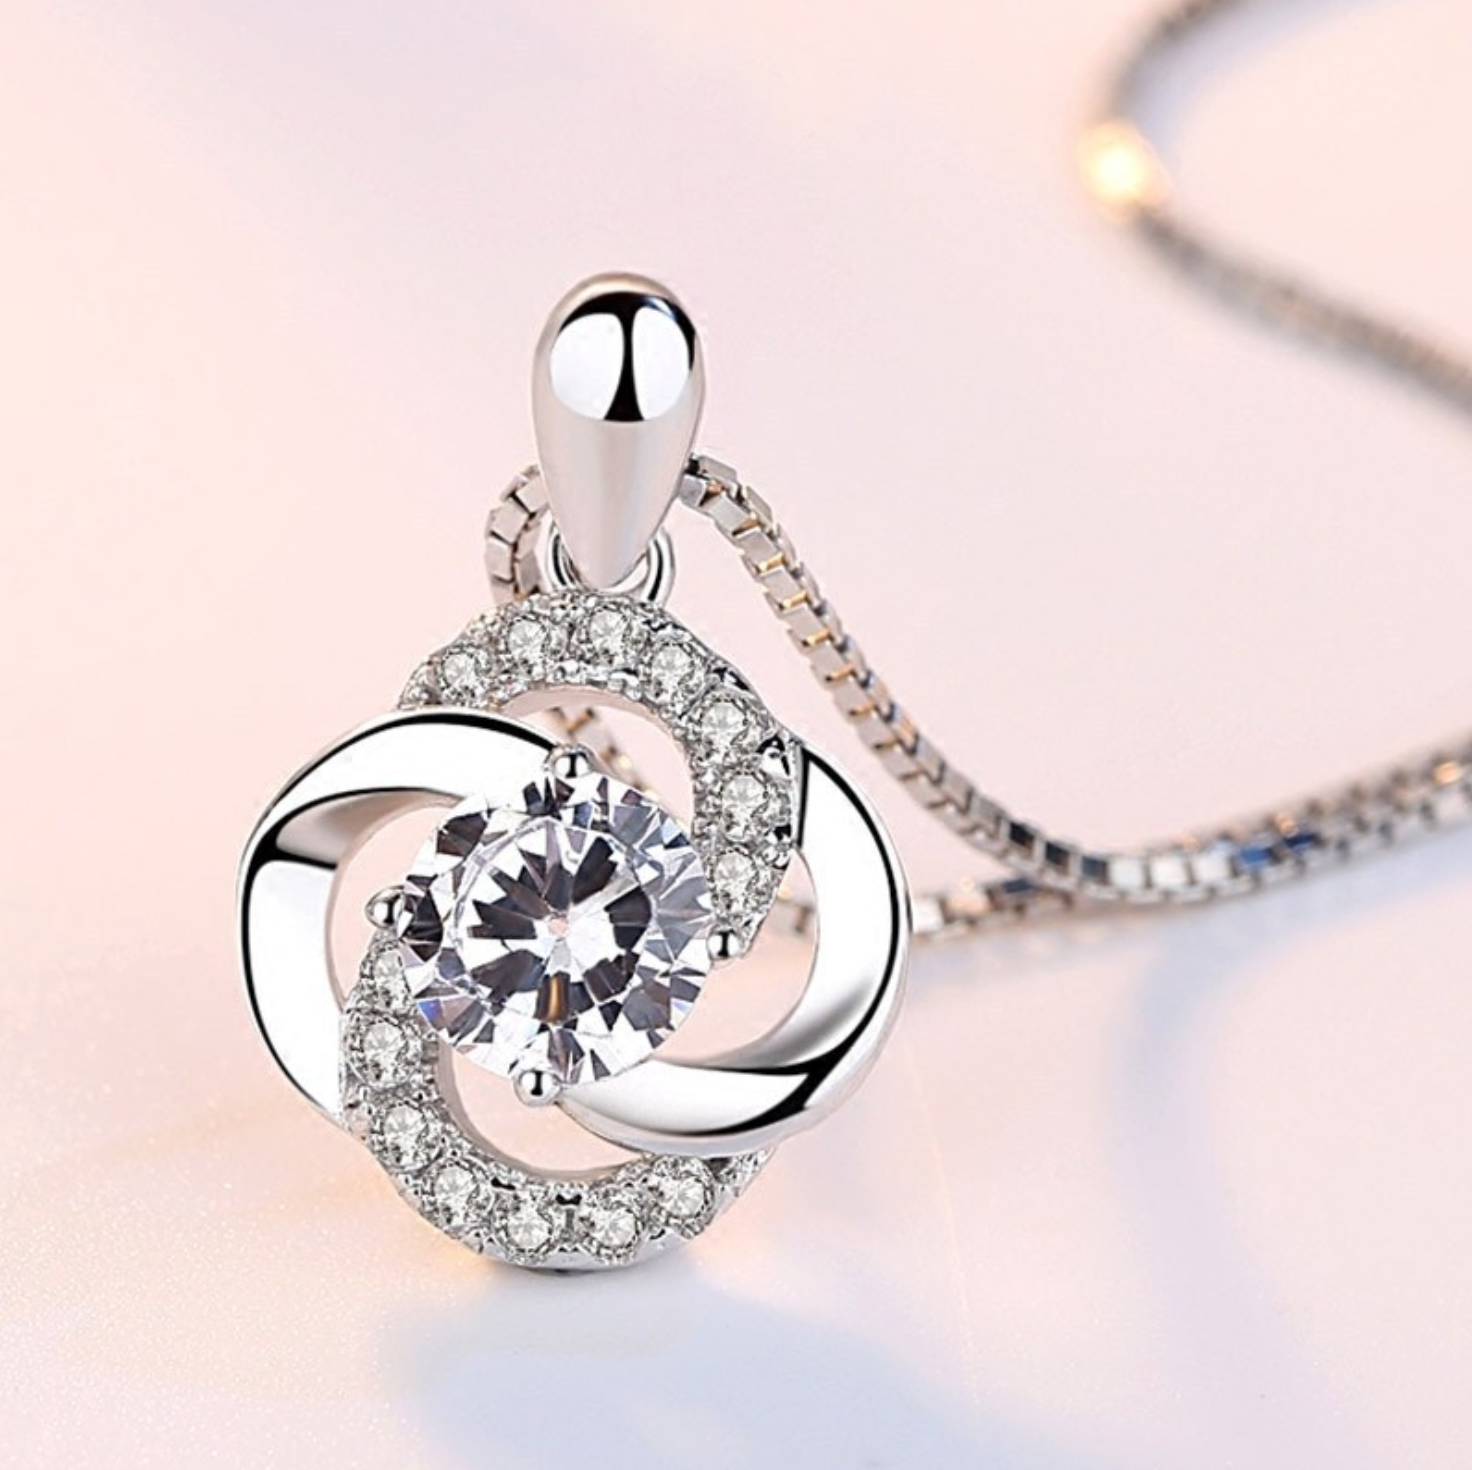 Jewellery - 925 Sterling Silver Crystal Swirl Stone Pendant Chain Necklace Womens Jewellery